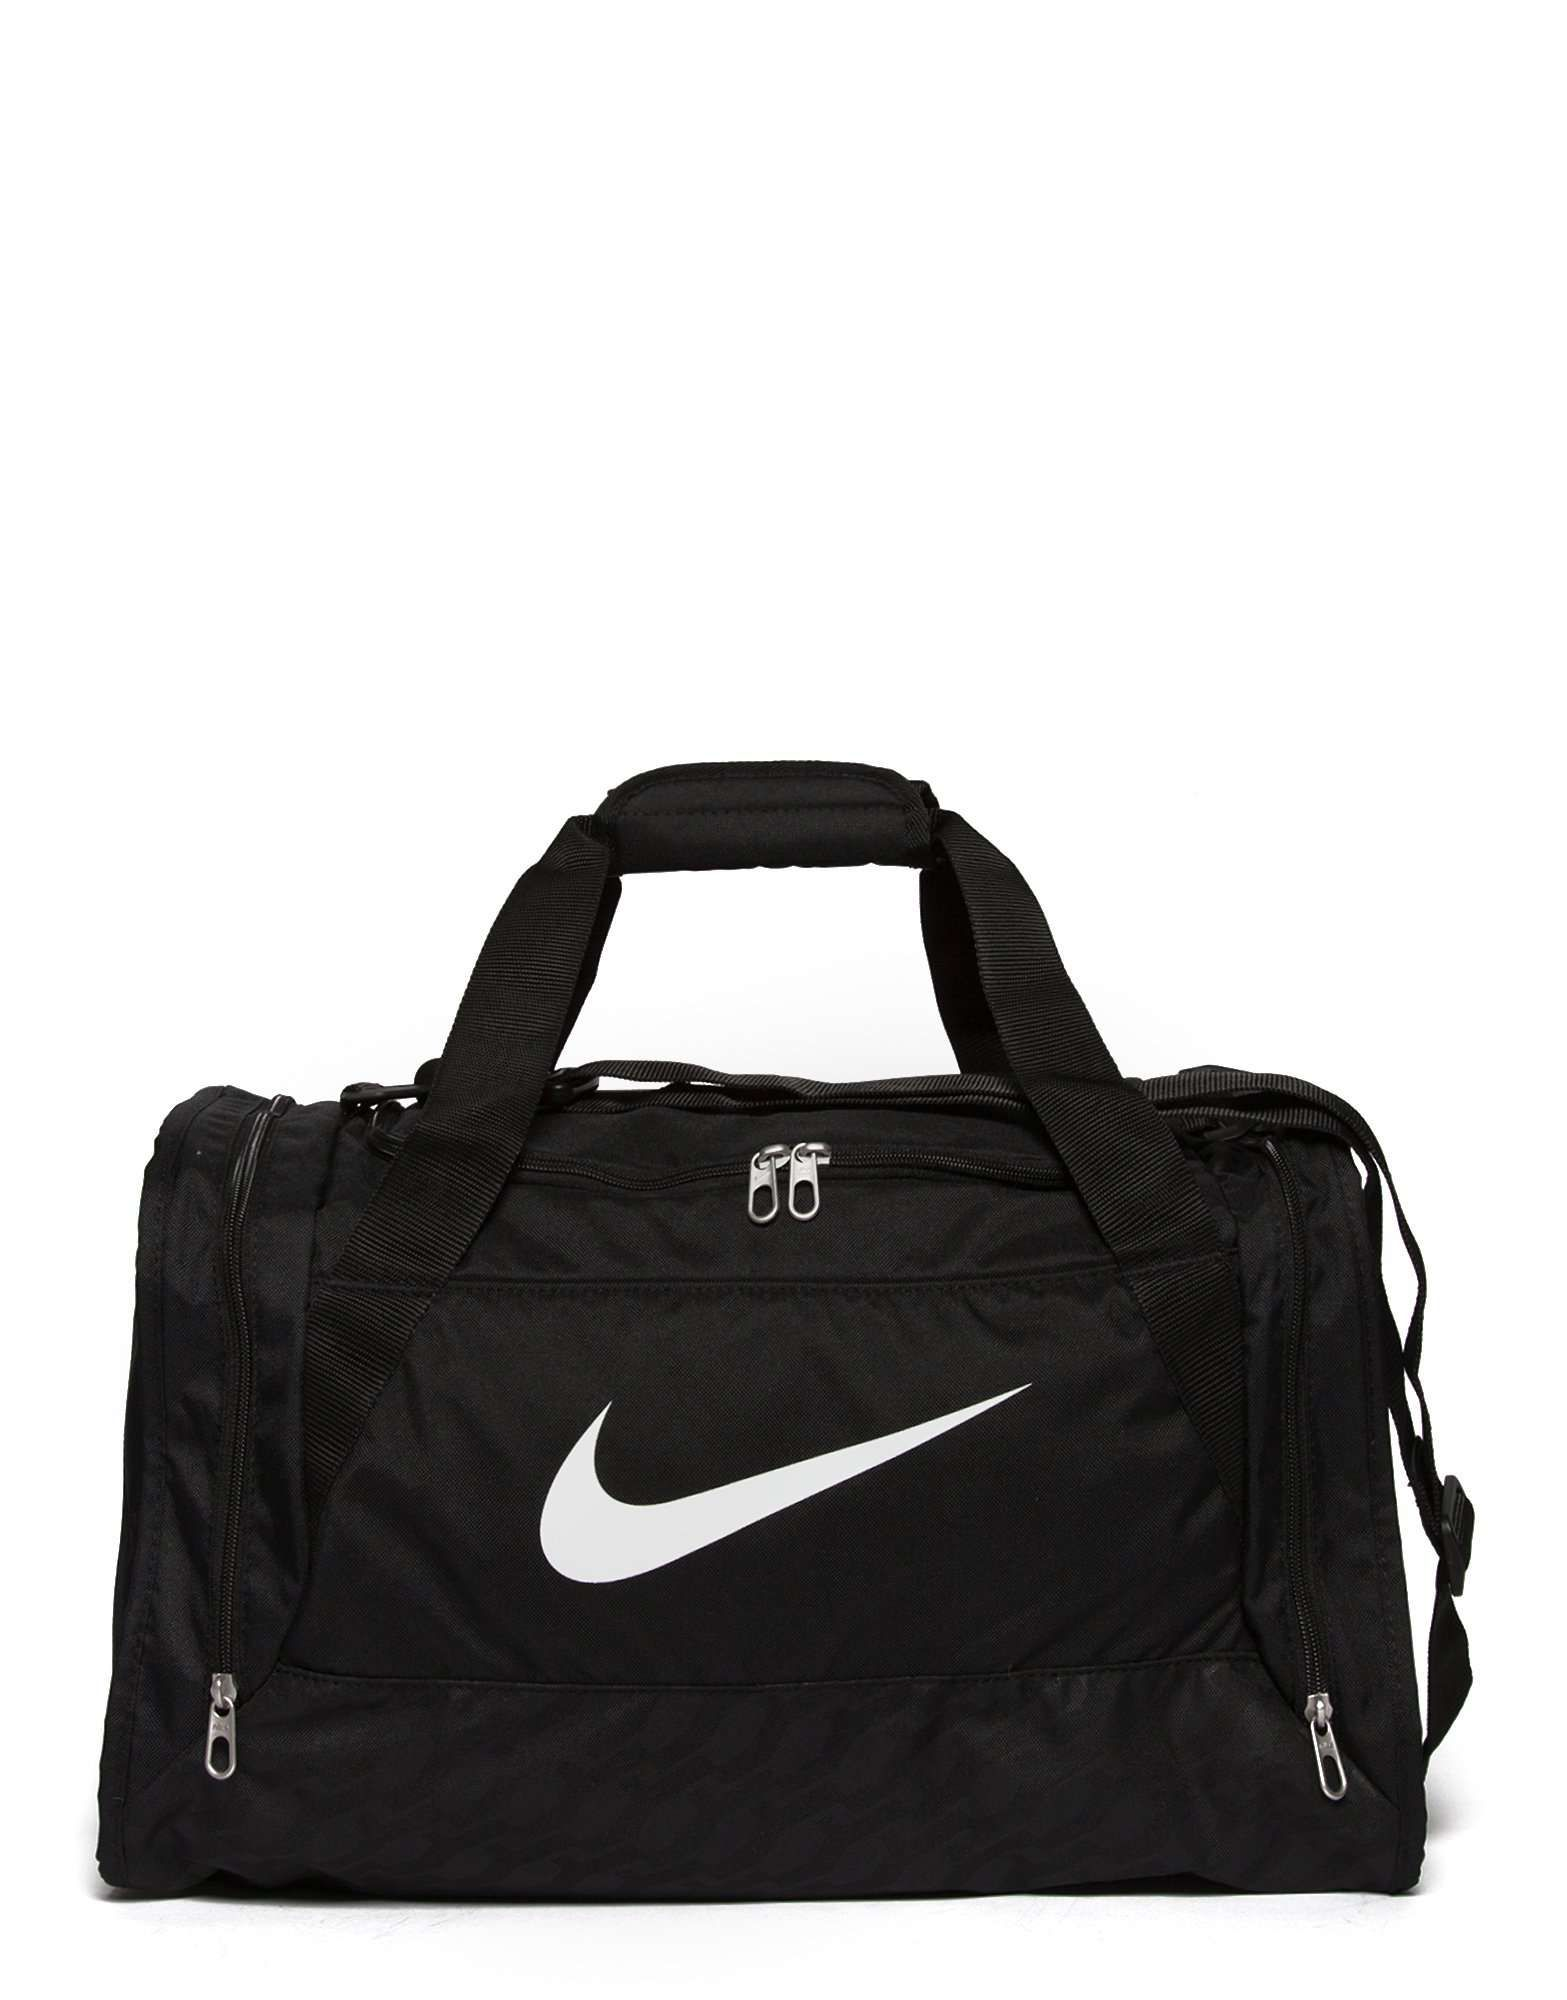 3b3153daa3 Nike Brasilia Small Duffle Bag - Shop online for Nike Brasilia Small Duffle  Bag with JD Sports